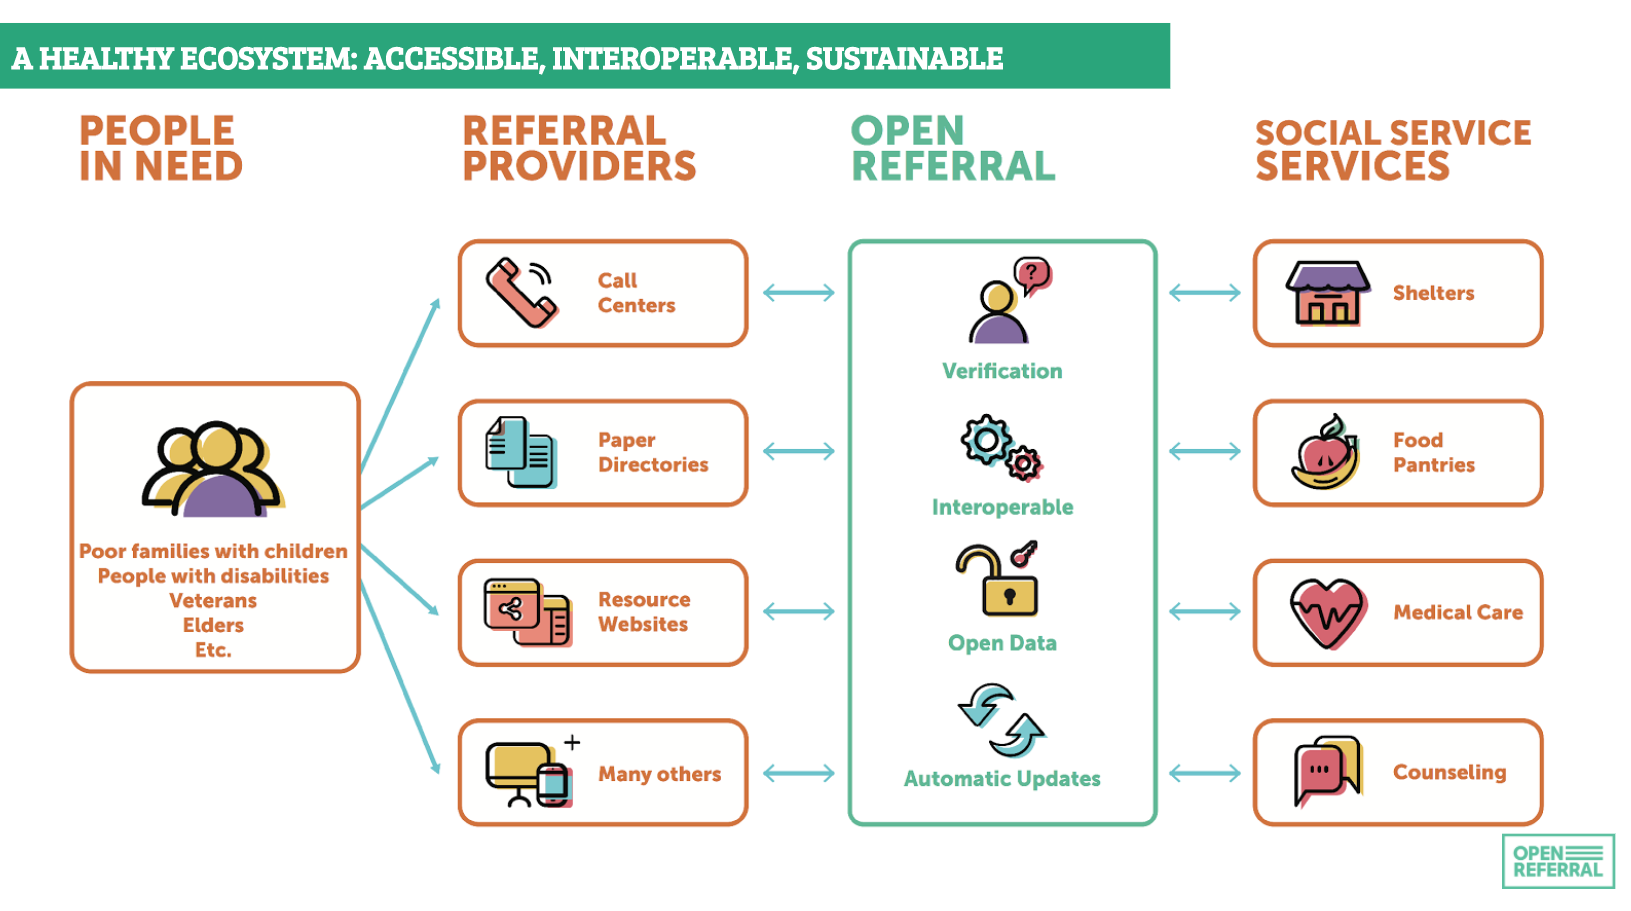 A Healthy Ecosystem: Accessible, Interoperable, Sustainable